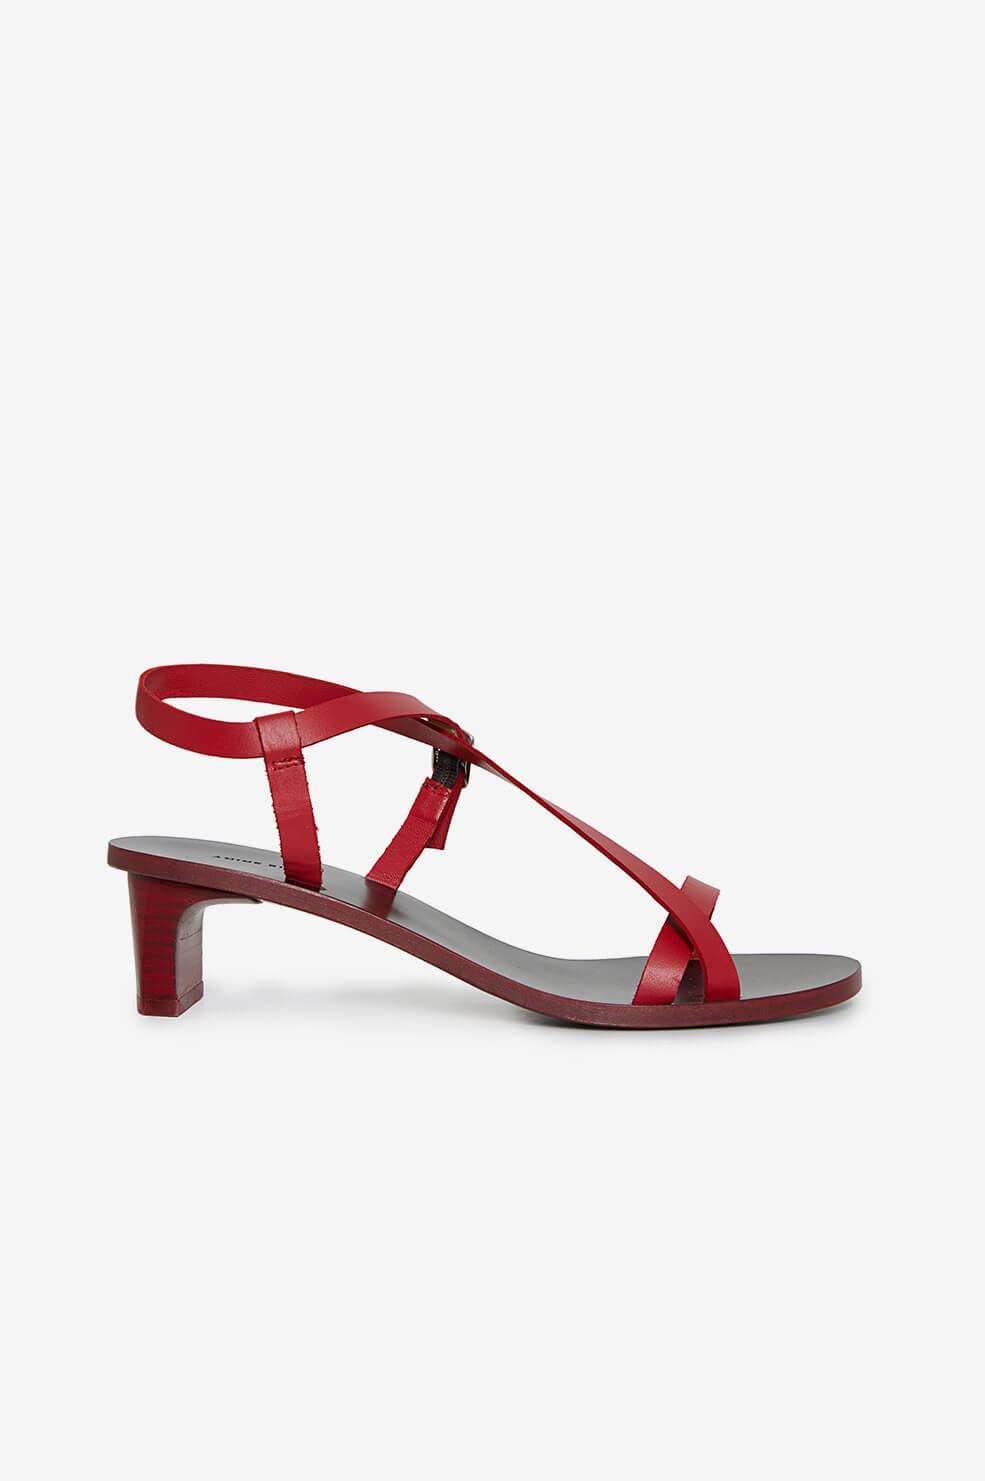 ANINE BING Remi Sandals - Red